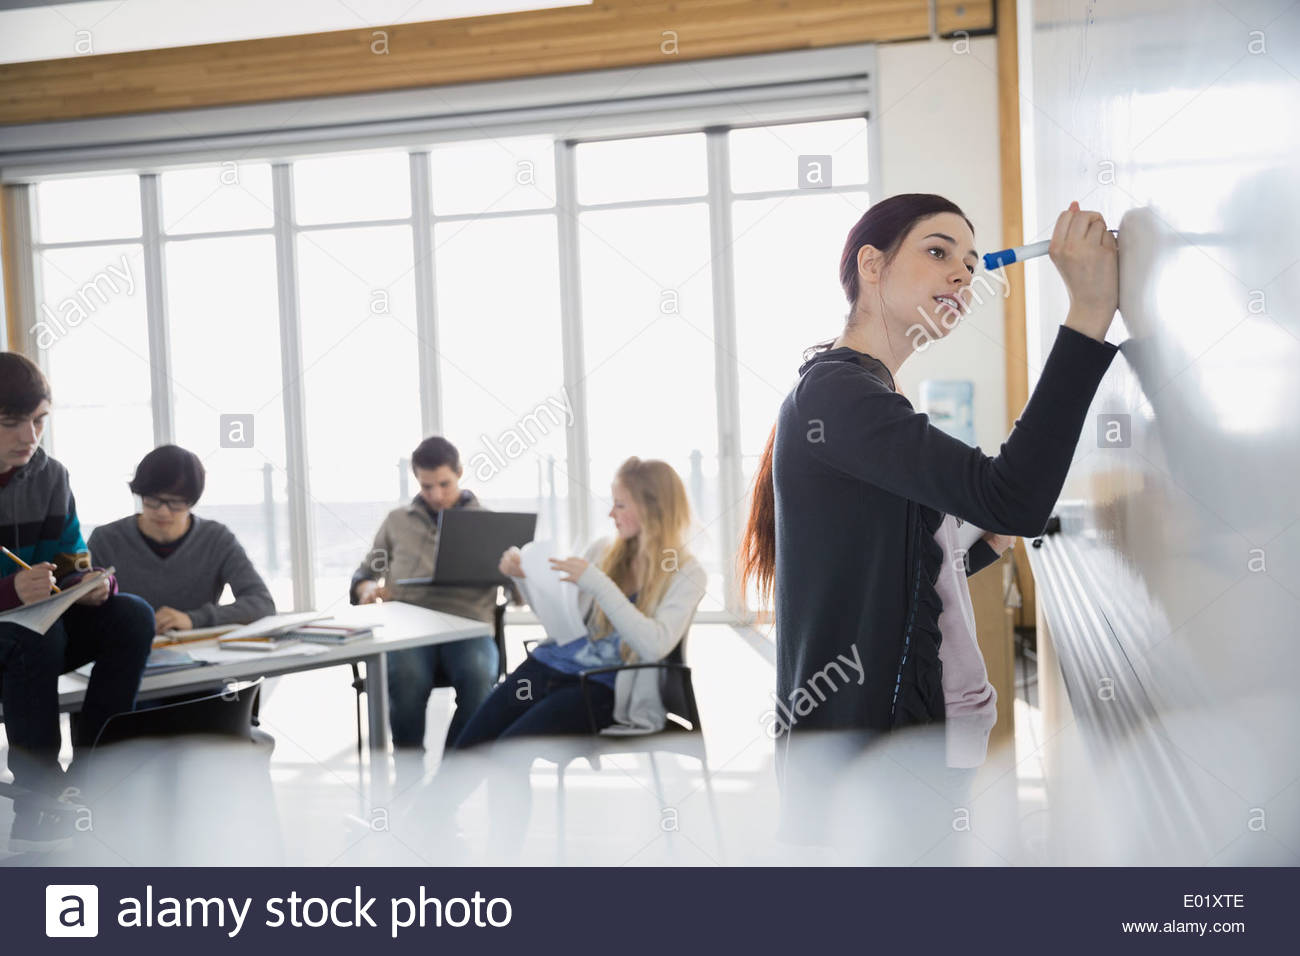 High school student at whiteboard in classroom Photo Stock